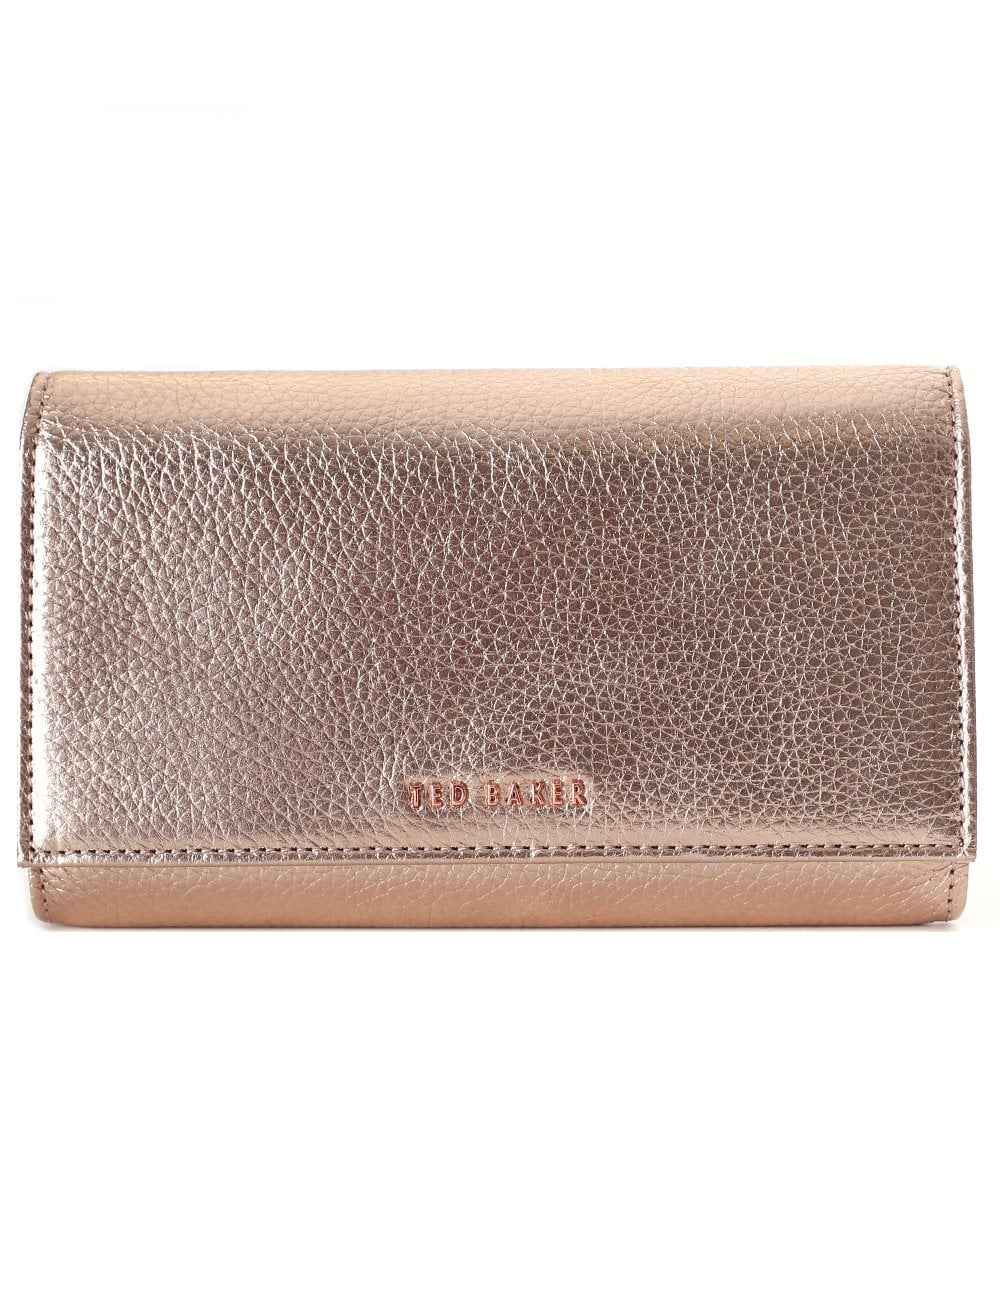 095d8f01e778ff Ted Baker Women s Textured Holli French Purse